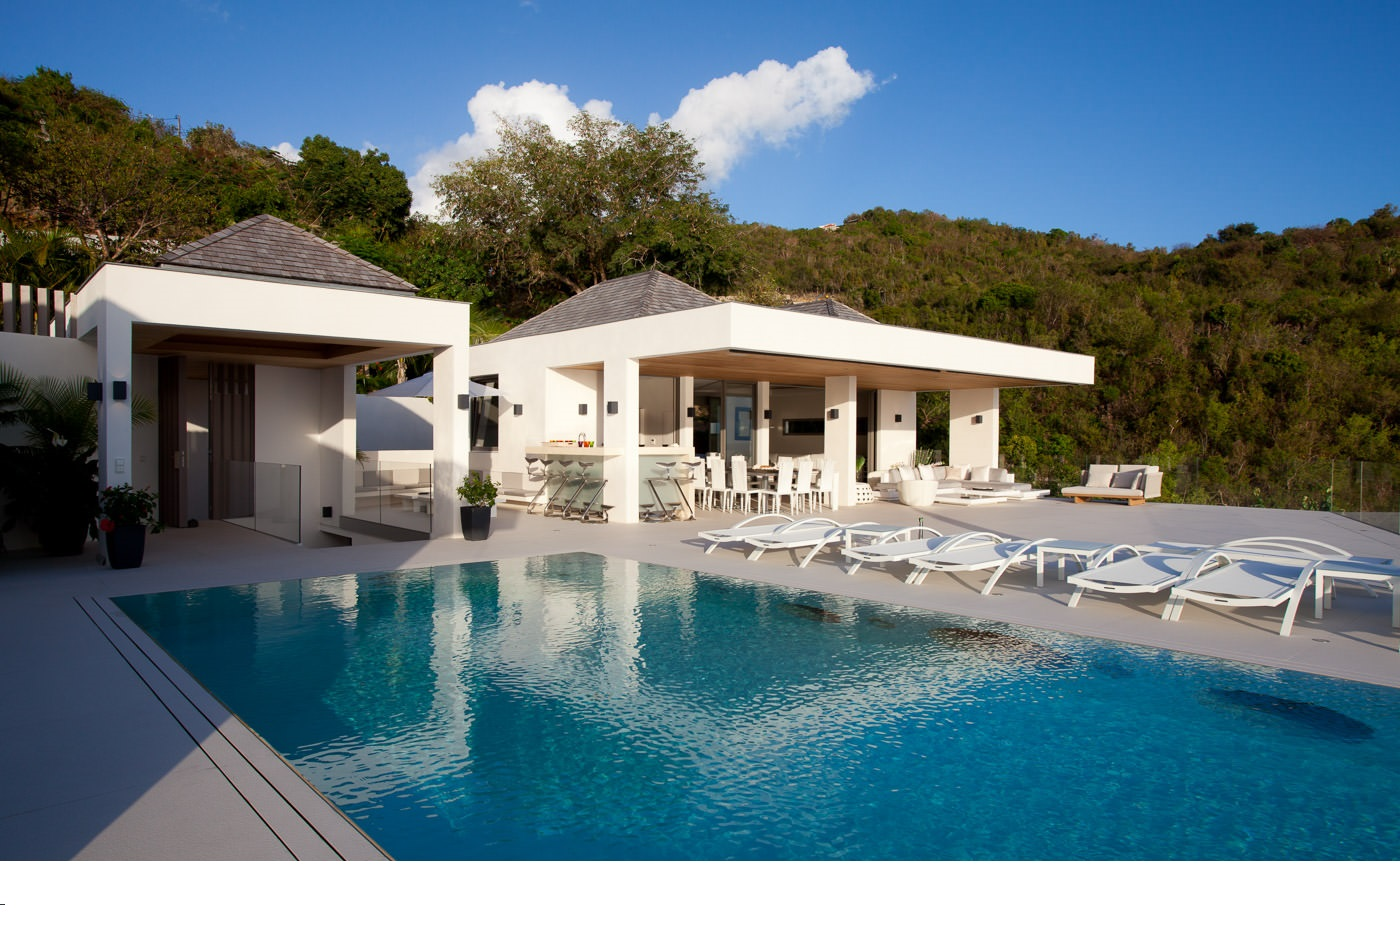 Location Villa Saint Barthelemy Antilles